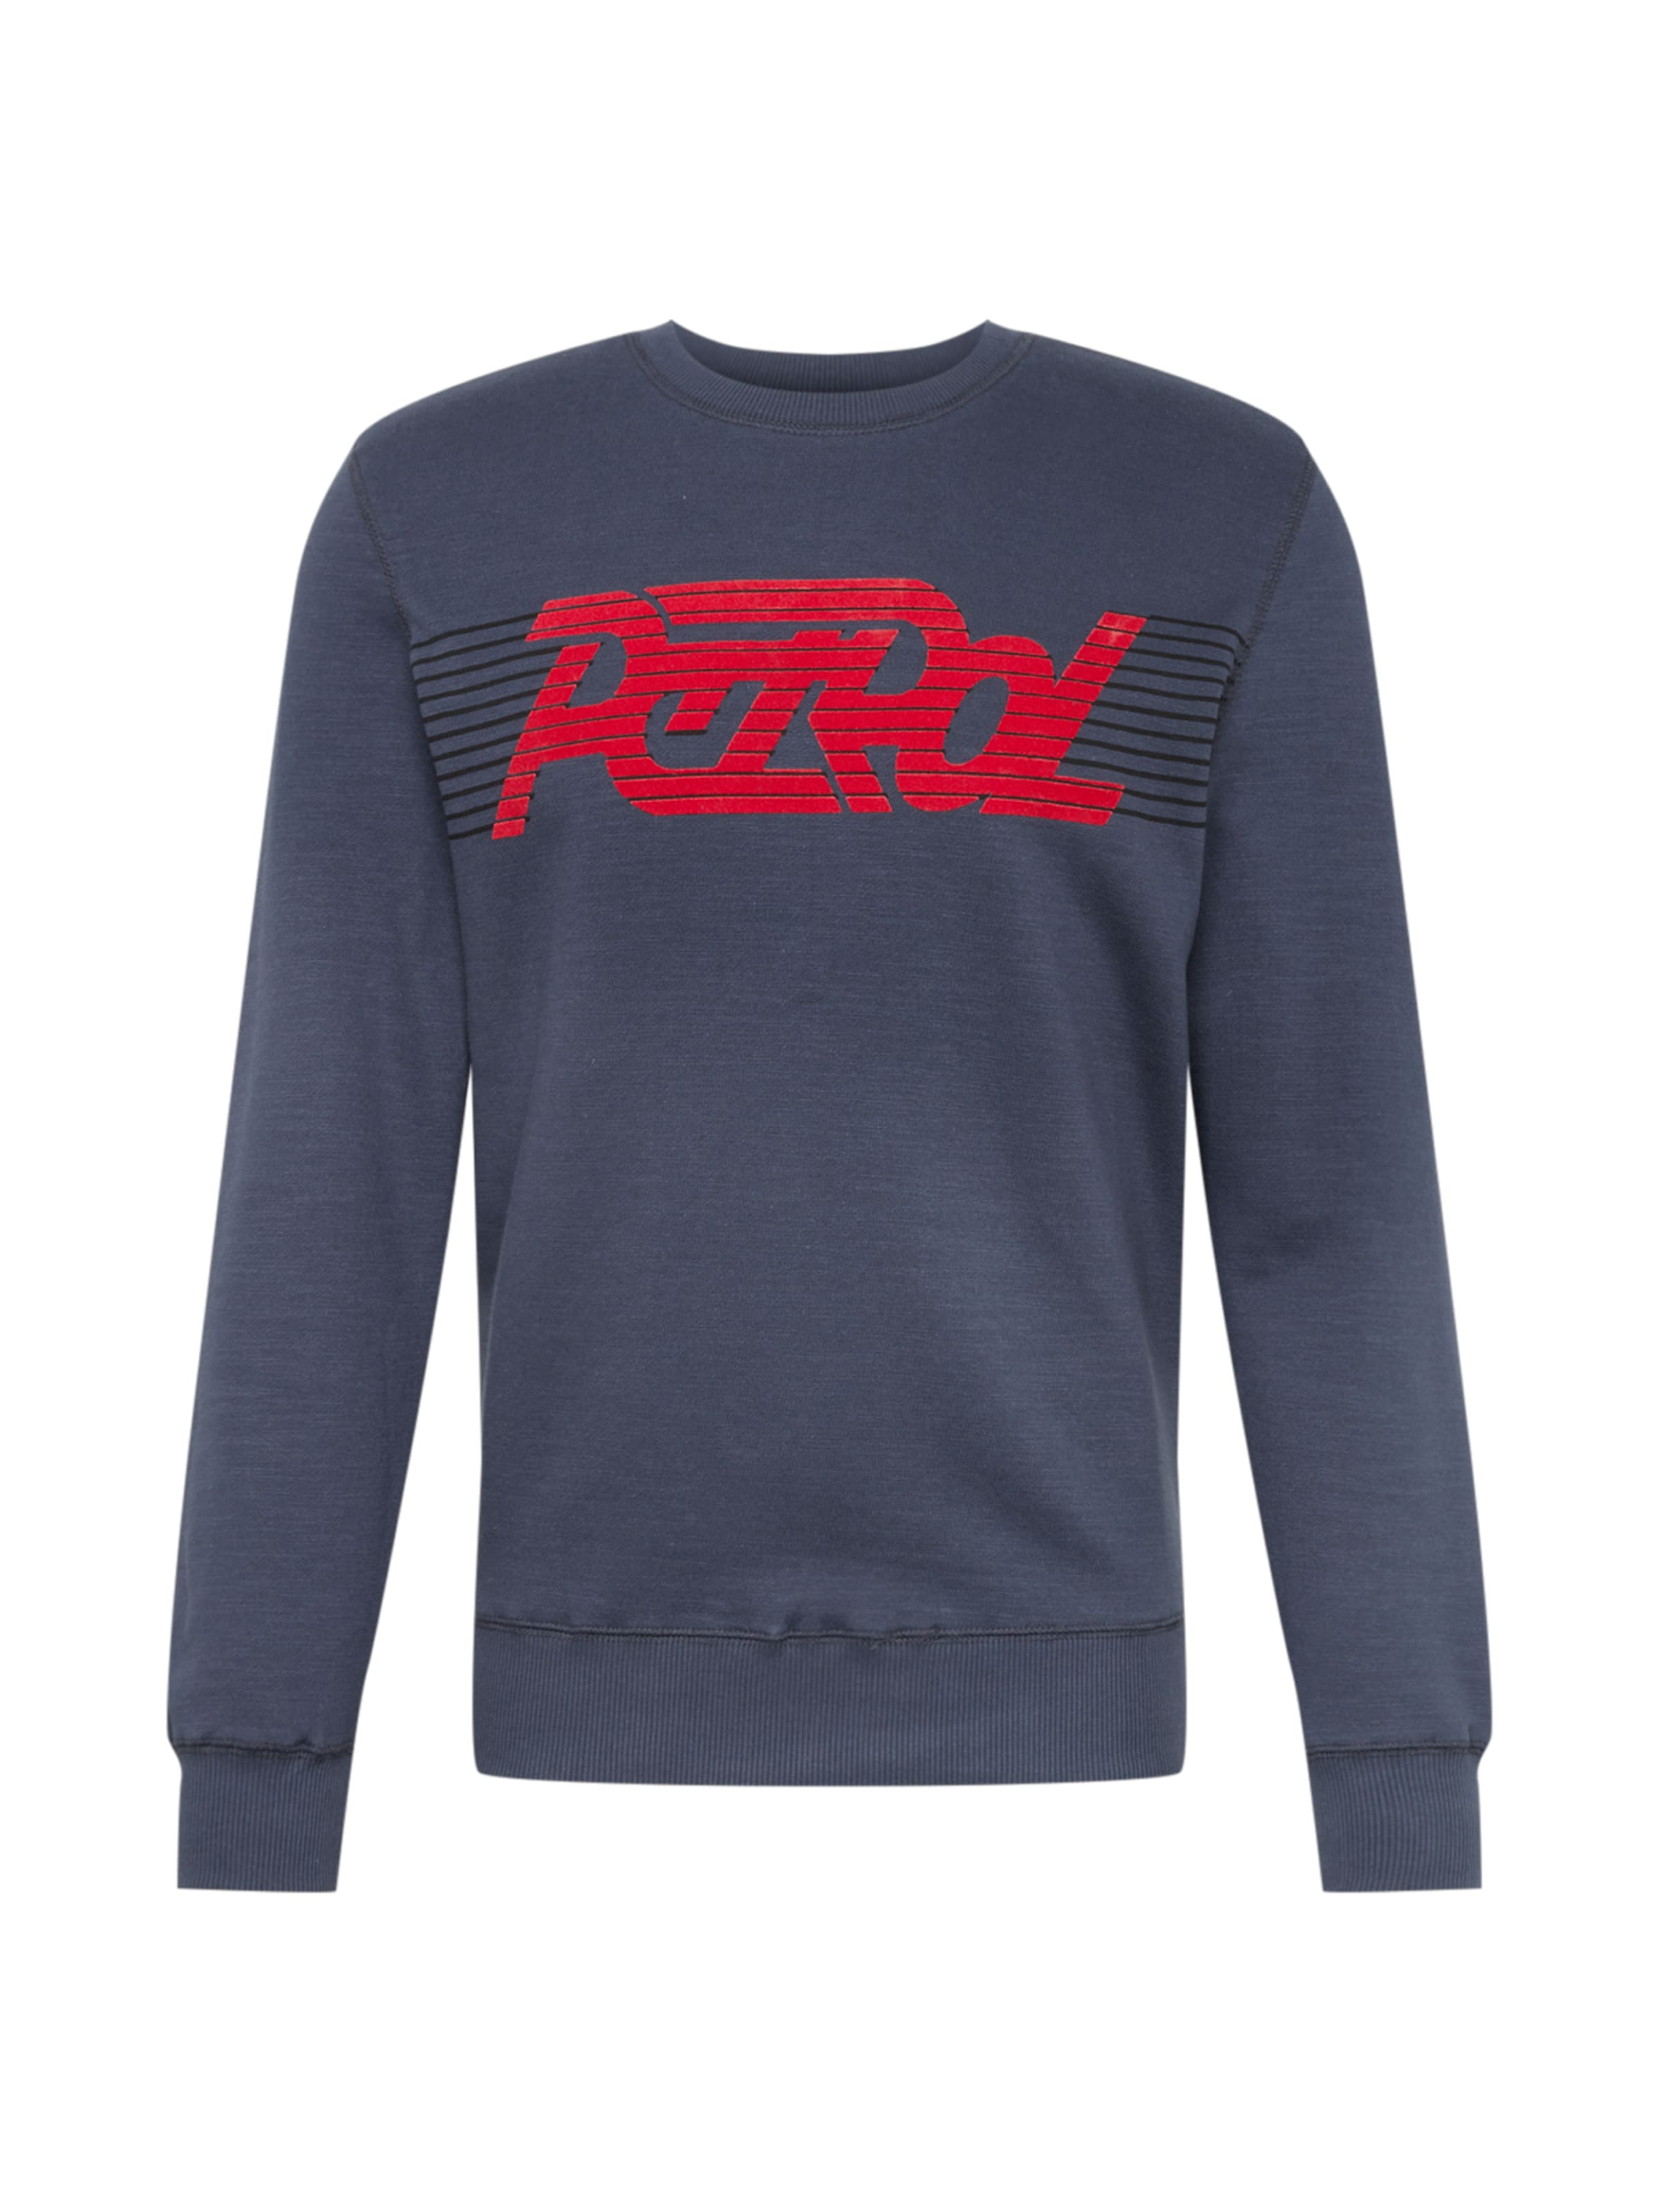 Industries Sweatshirt Grau Petrol Industries In Industries Petrol Grau In Petrol Sweatshirt pUMVSz